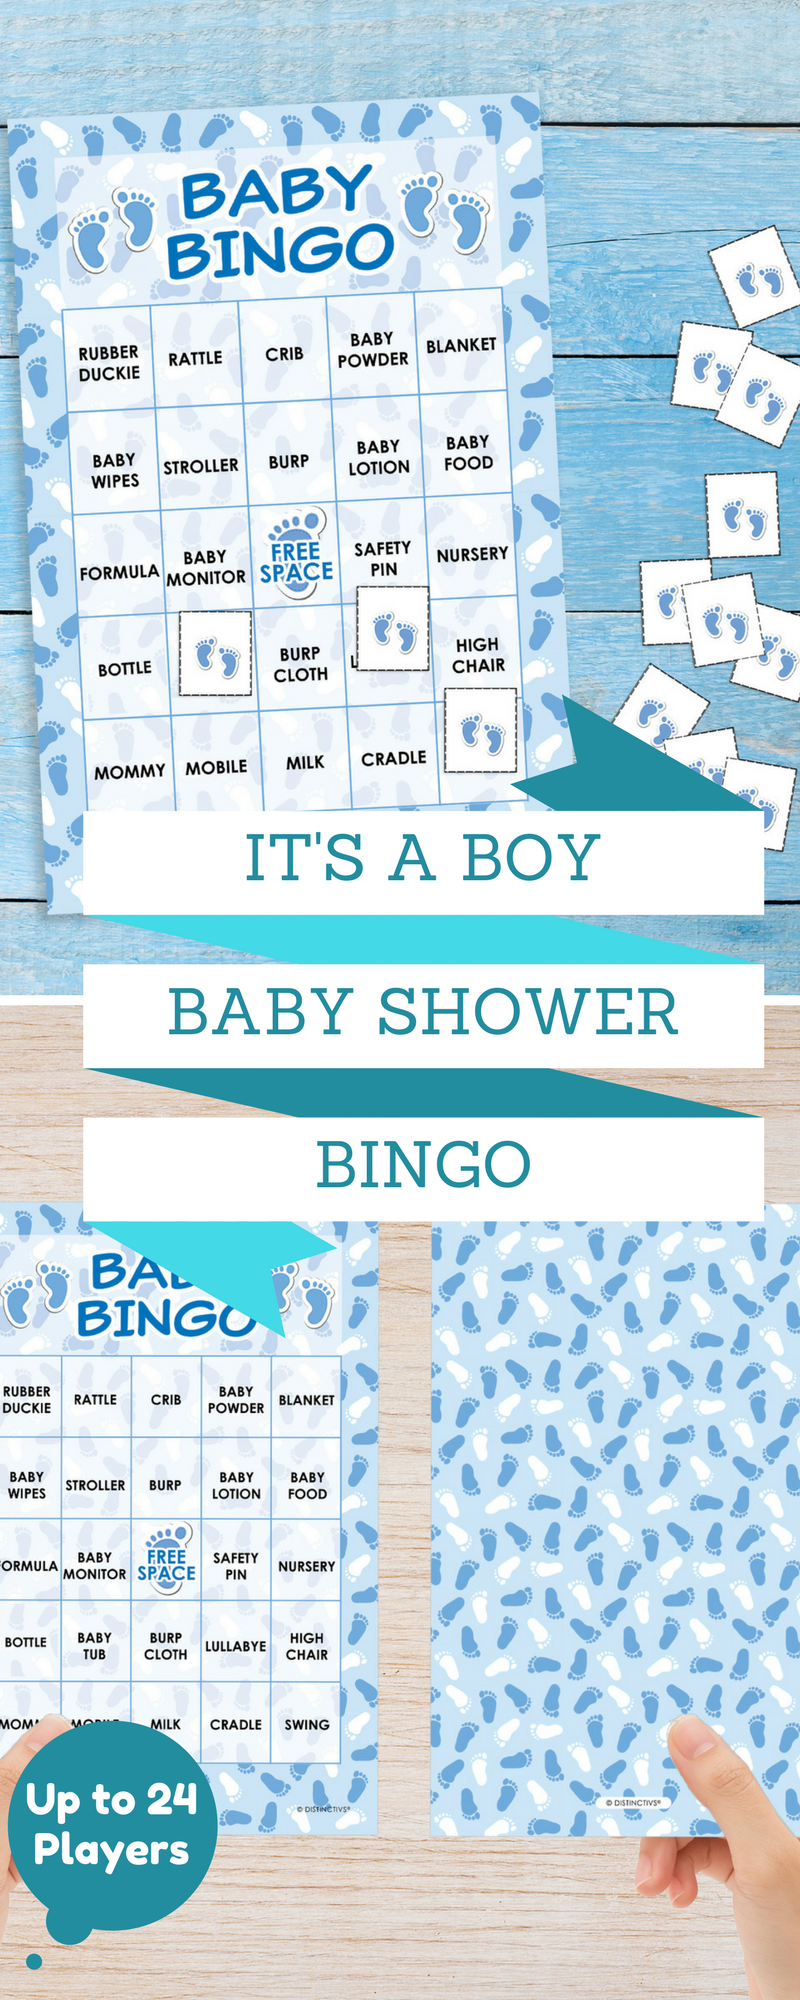 Donu0027t Forget The Baby Shower Games. This Boy Themed Baby BINGO Shower Game